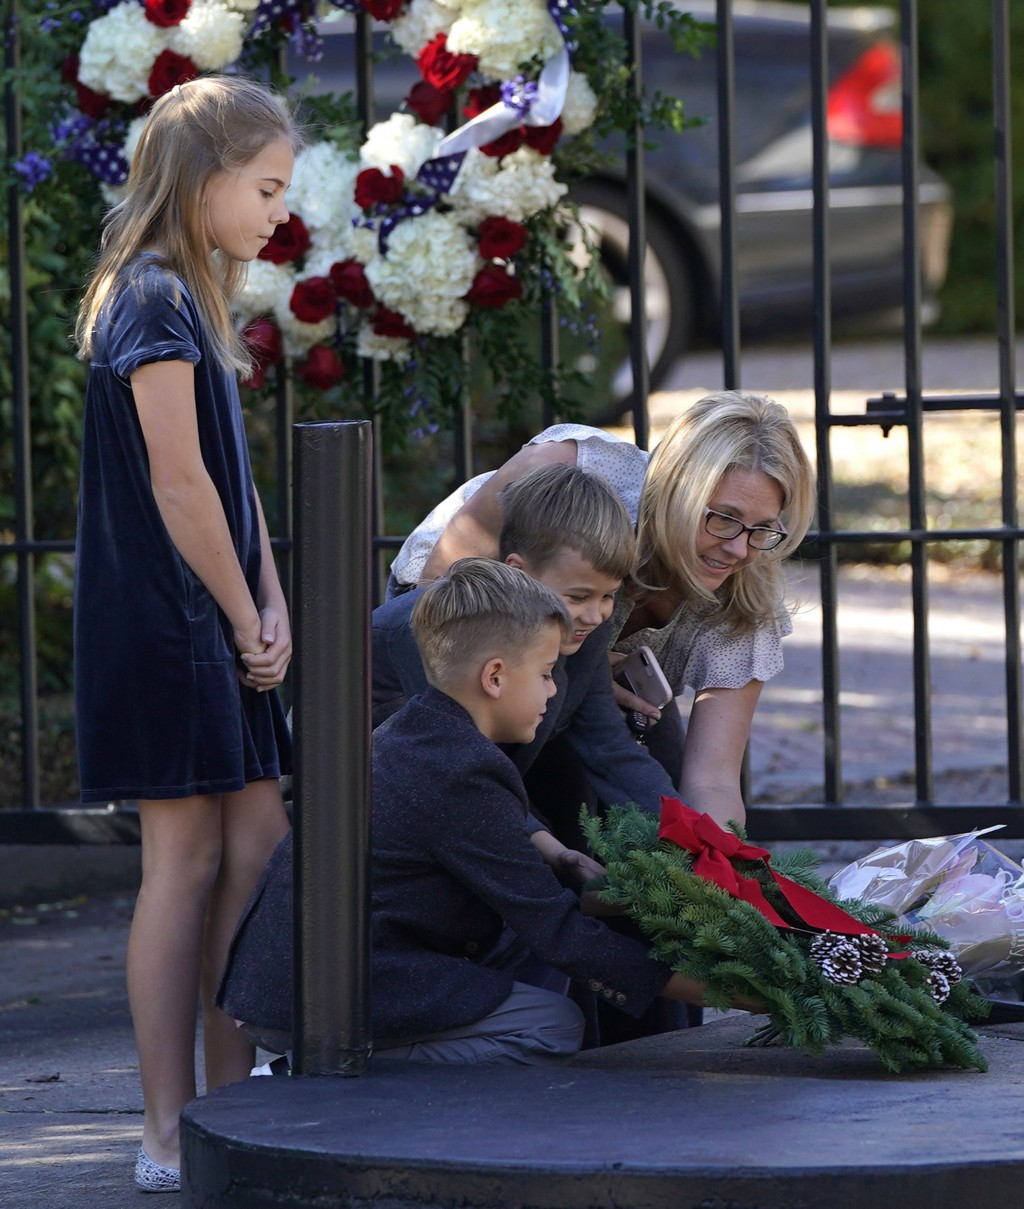 Tiffany Utterson, right, and her children, from left to right, Ella, 11, Ian, 10 and Owen, 8, place a wreath outside the gated community entrance to t